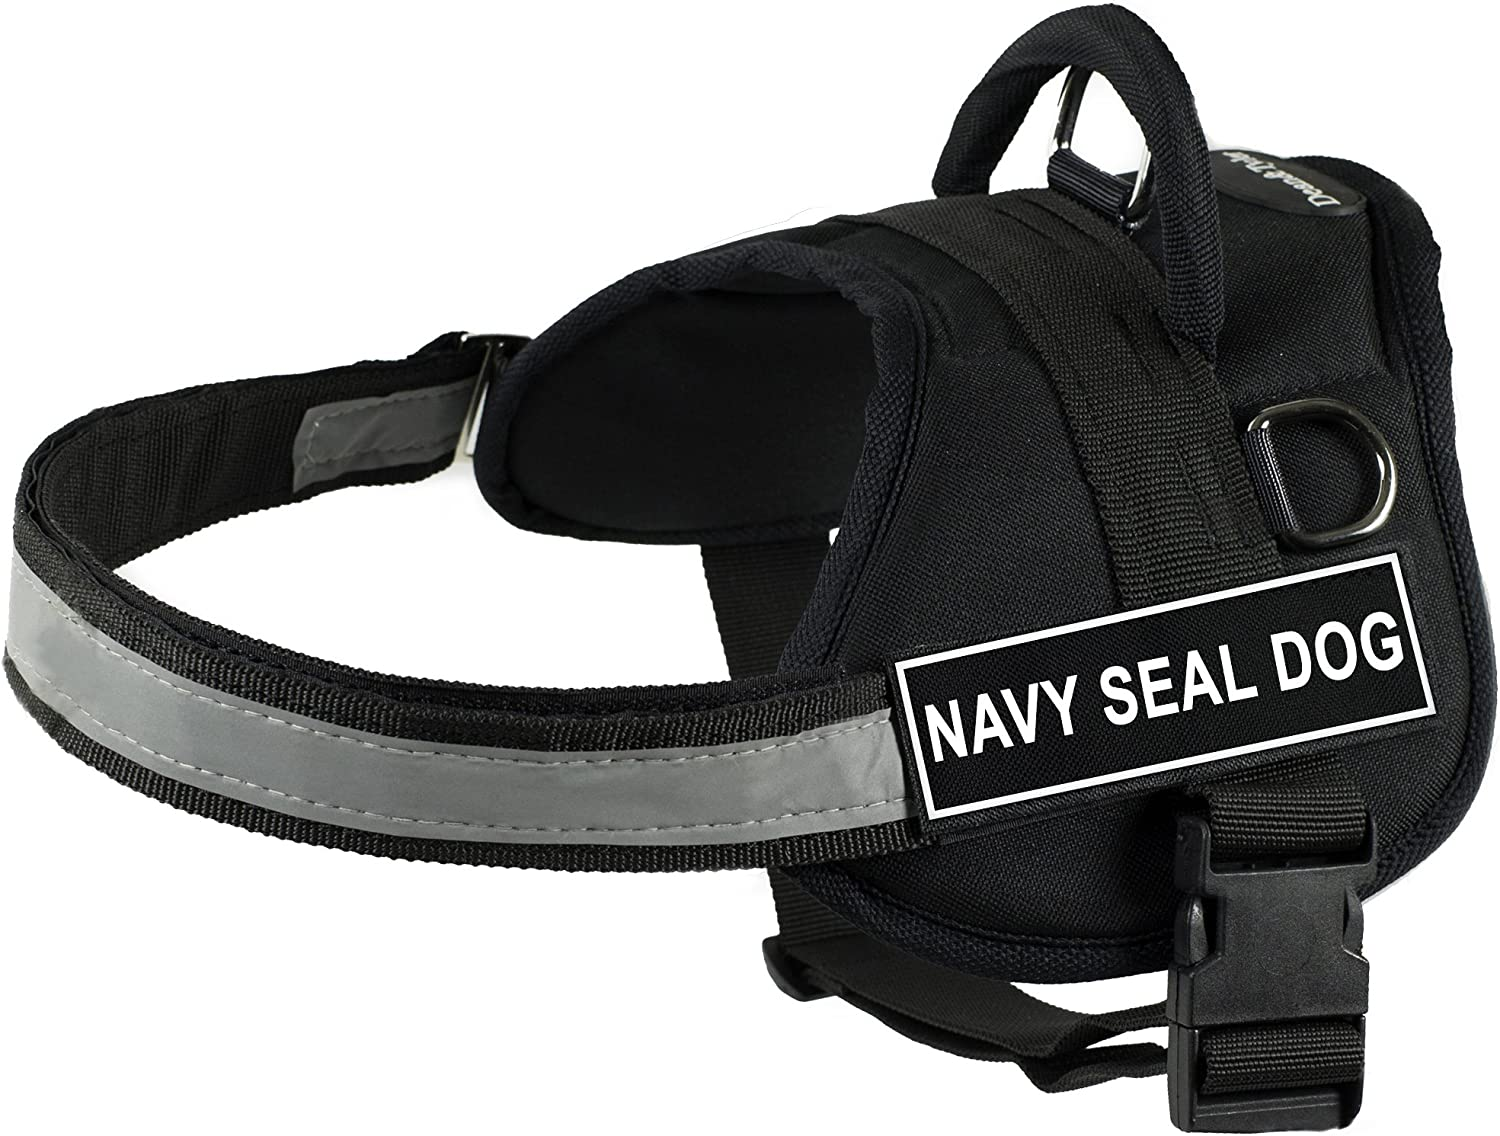 Dean & Tyler 21Inch to 26Inch Pet Harness, XSmall, Navy Seal Dog, Black